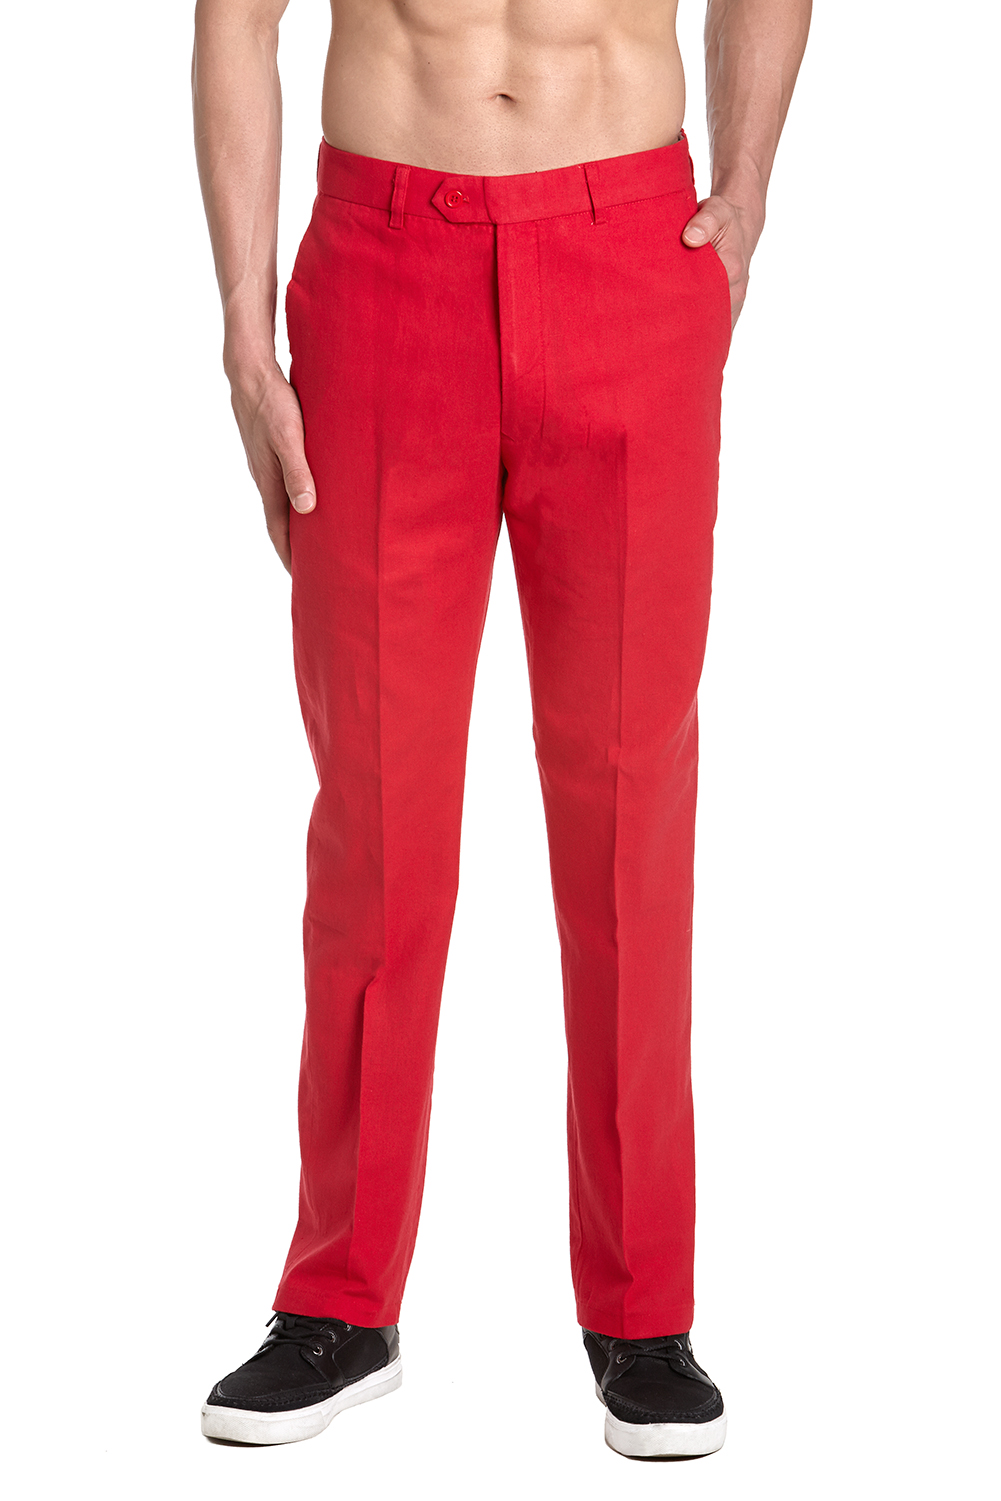 Dress Pants: Free Shipping on orders over $45 at forex-2016.ga - Your Online Dress Pants Store! Get 5% in rewards with Club O!